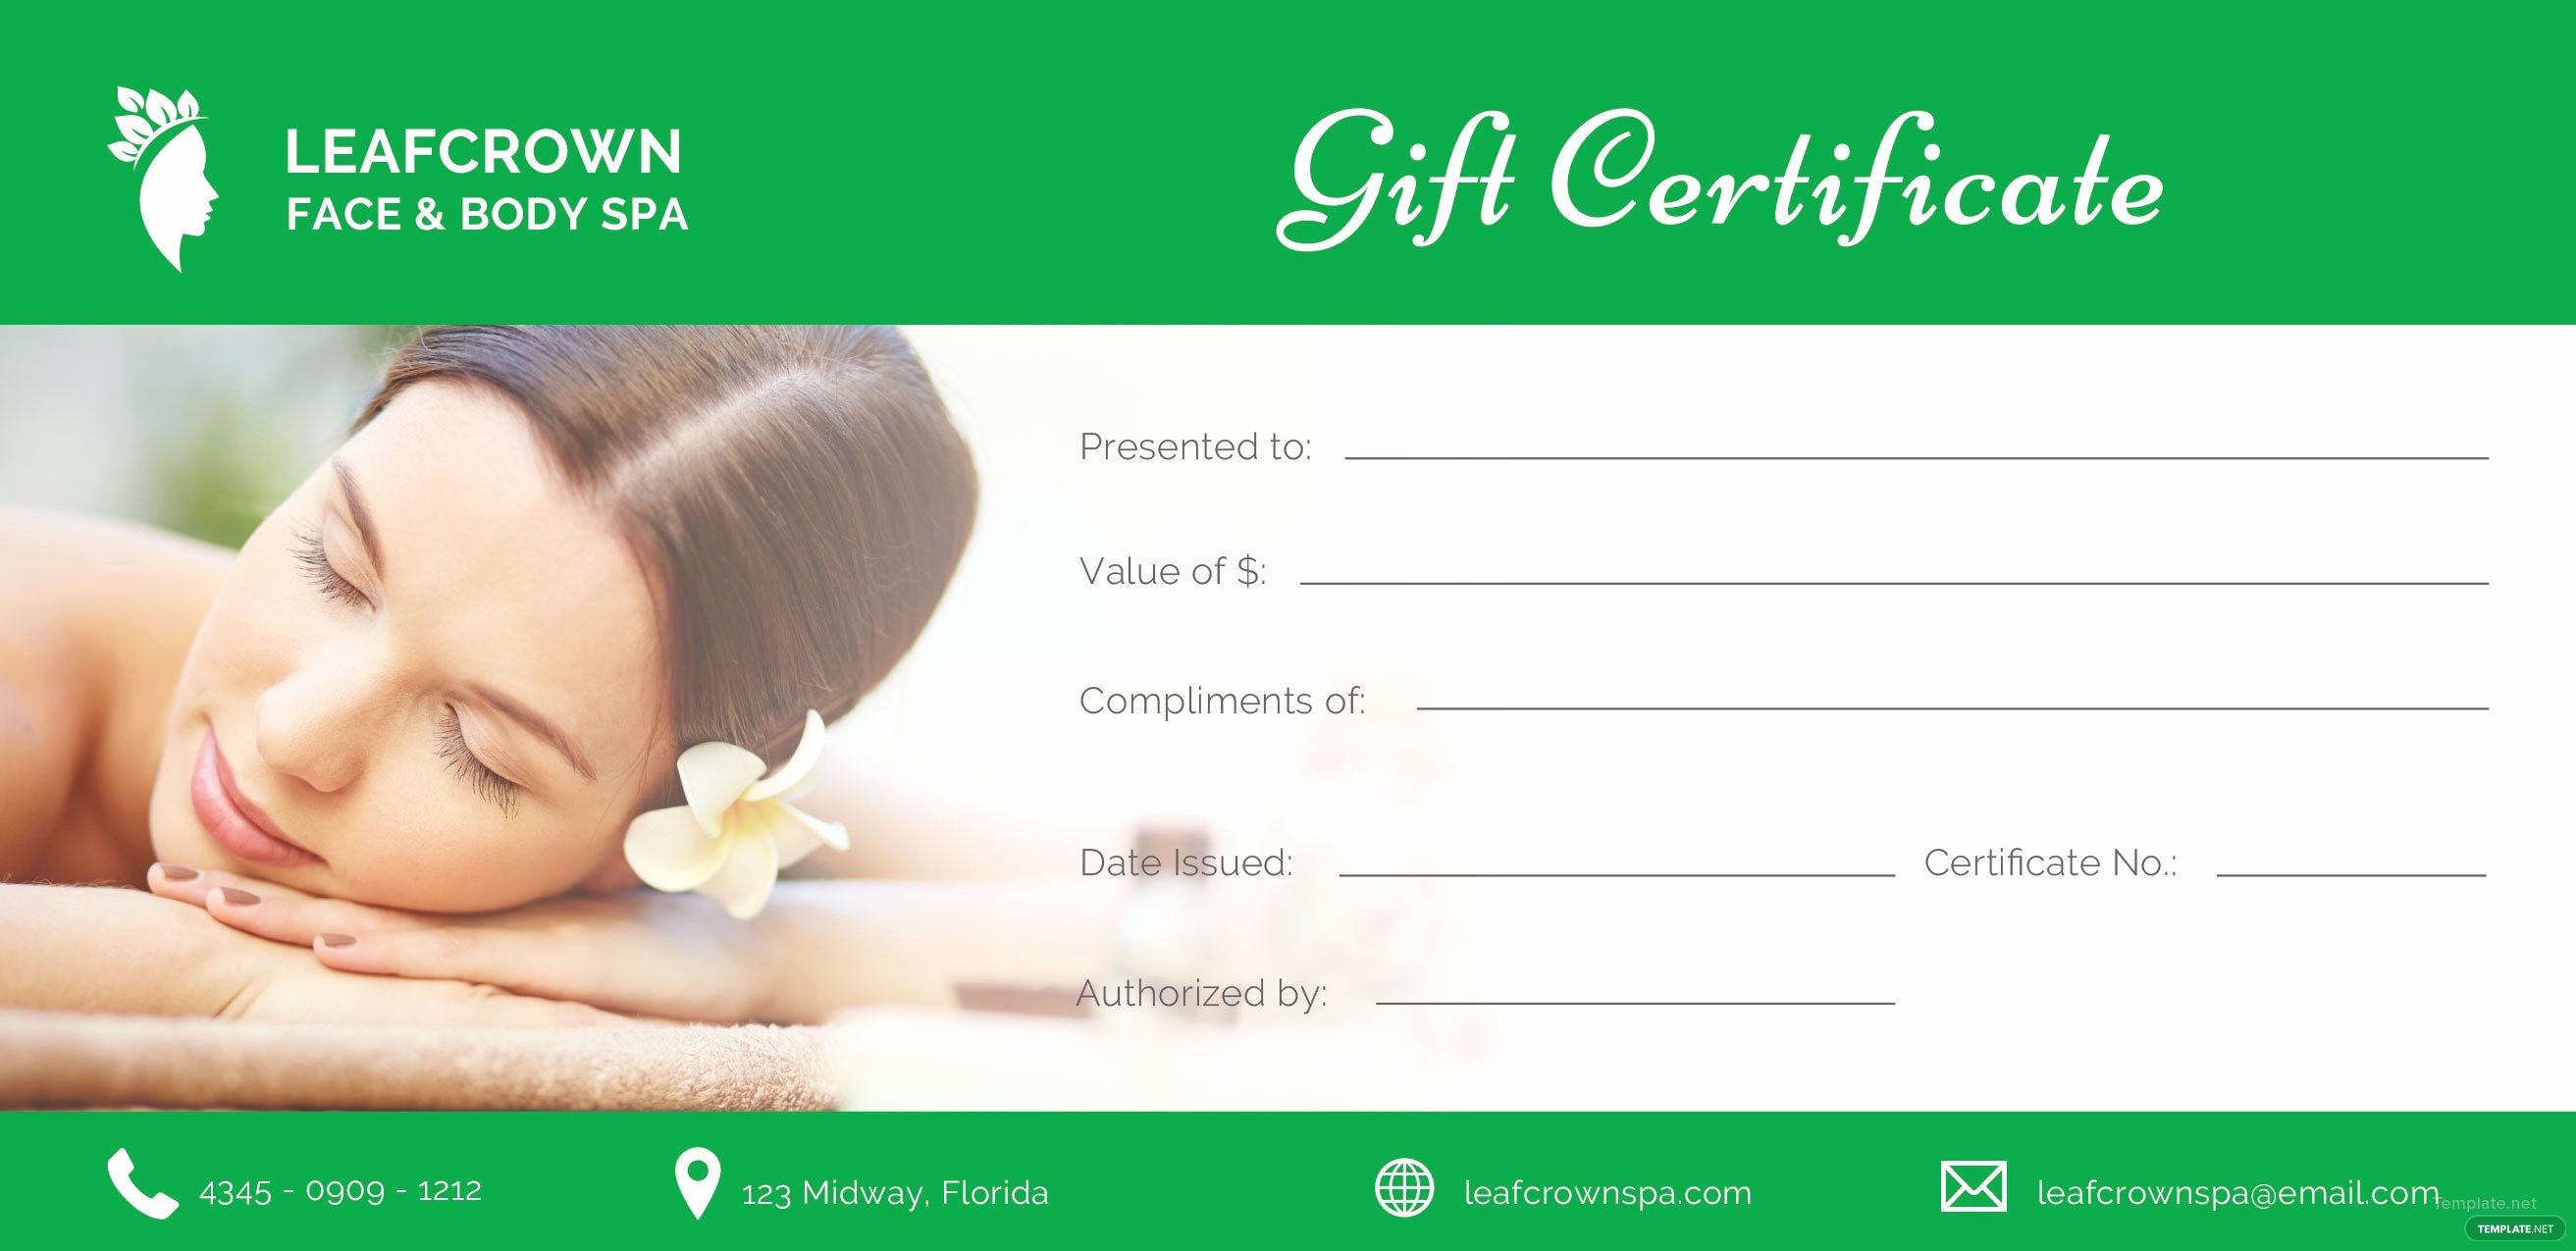 Salon Gift Certificate Template New Free Spa Gift Certificate Template In Adobe Illustrator